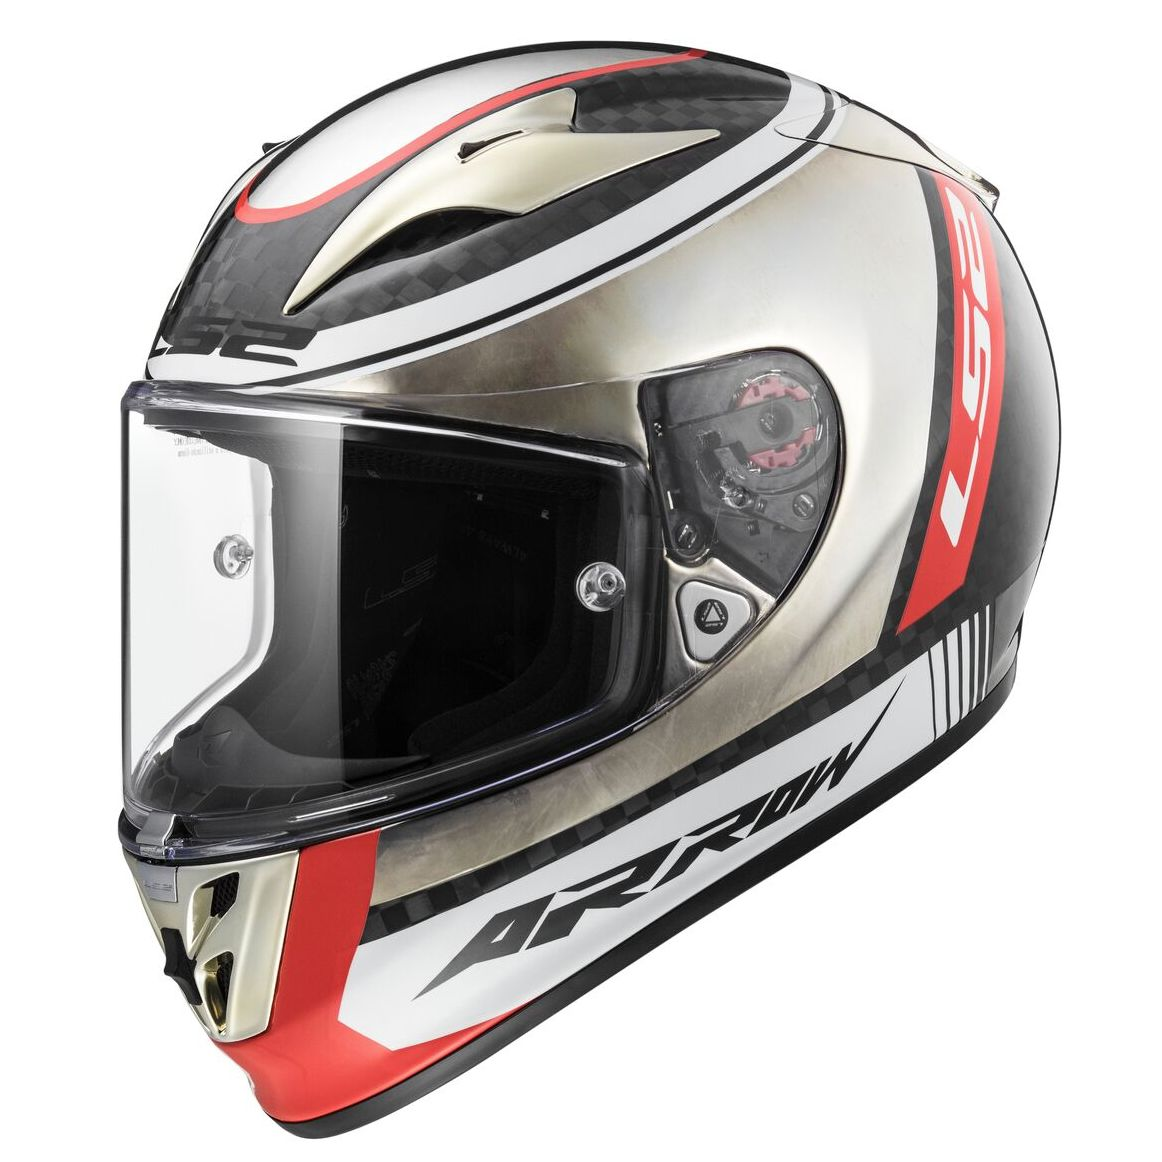 Casque LS2 DESTOCKAGE FF323 ARROW C EVO INDY